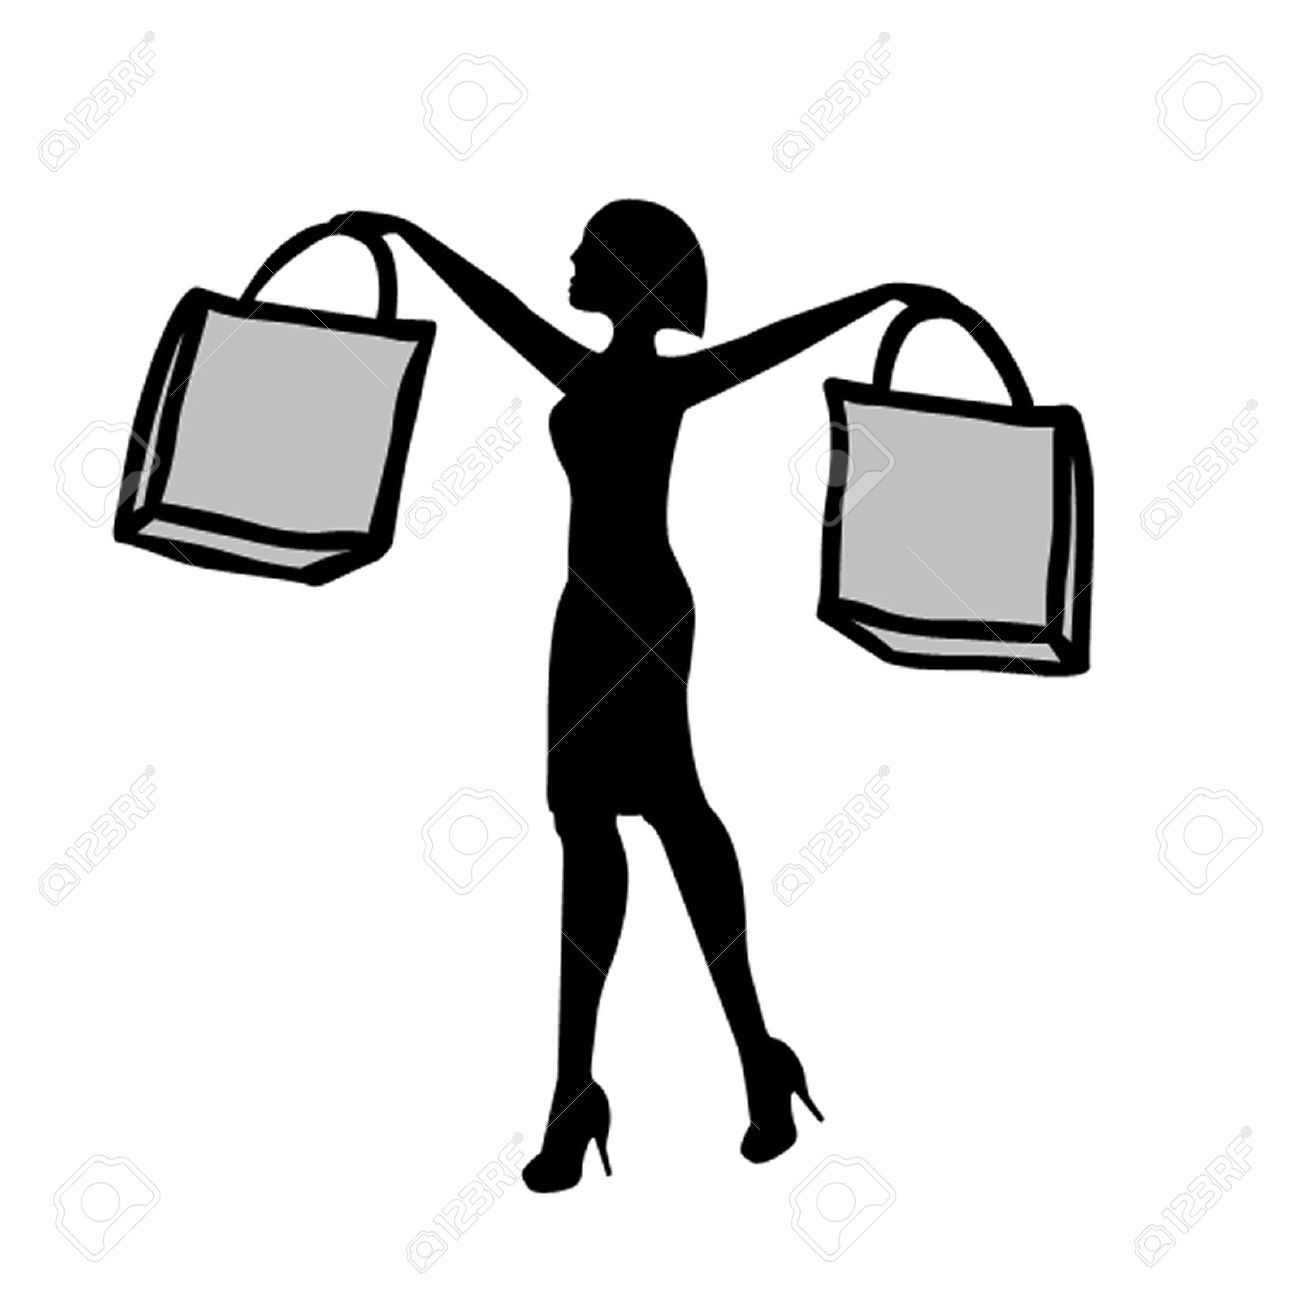 Woman With Shopping Bags Royalty Free Cliparts, Vectors, And Stock ...